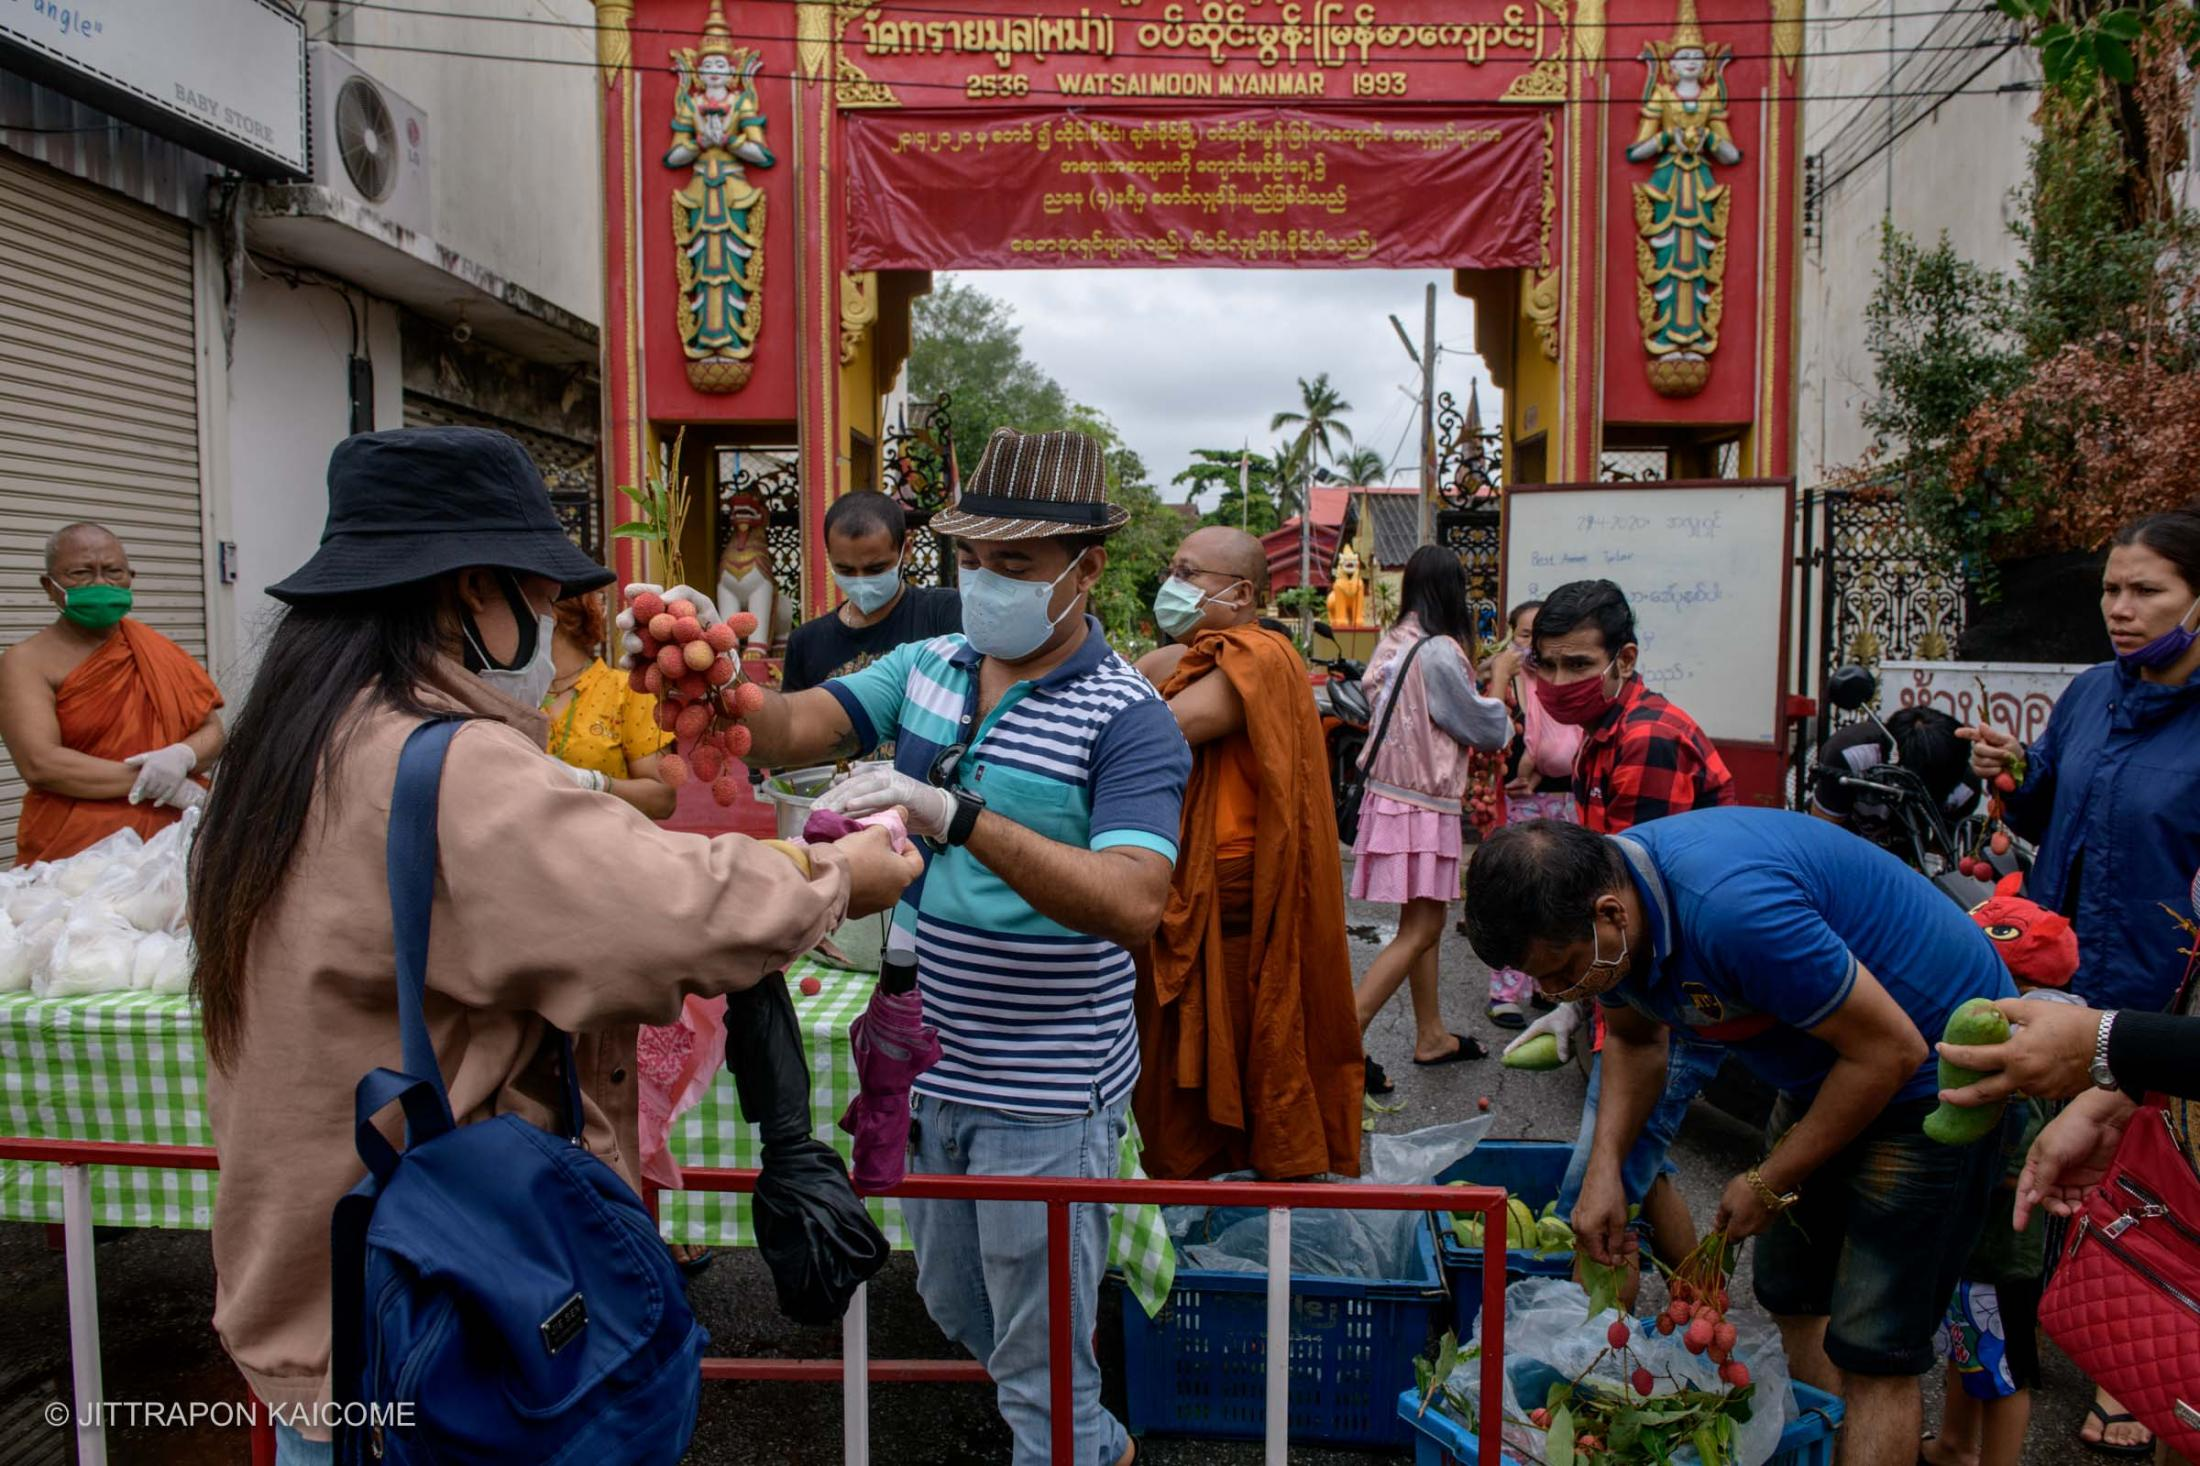 Covid-19 affected Burmese migrants who come to receive food handouts organized by the multi-ethnic brotherhood lead by Johny Adhikari at Wat Sai Moon Temple, a Burmese temple built during the time that Chiang Mai was under Burmese rule. - Chiang Mai, Thailand in April 2020.